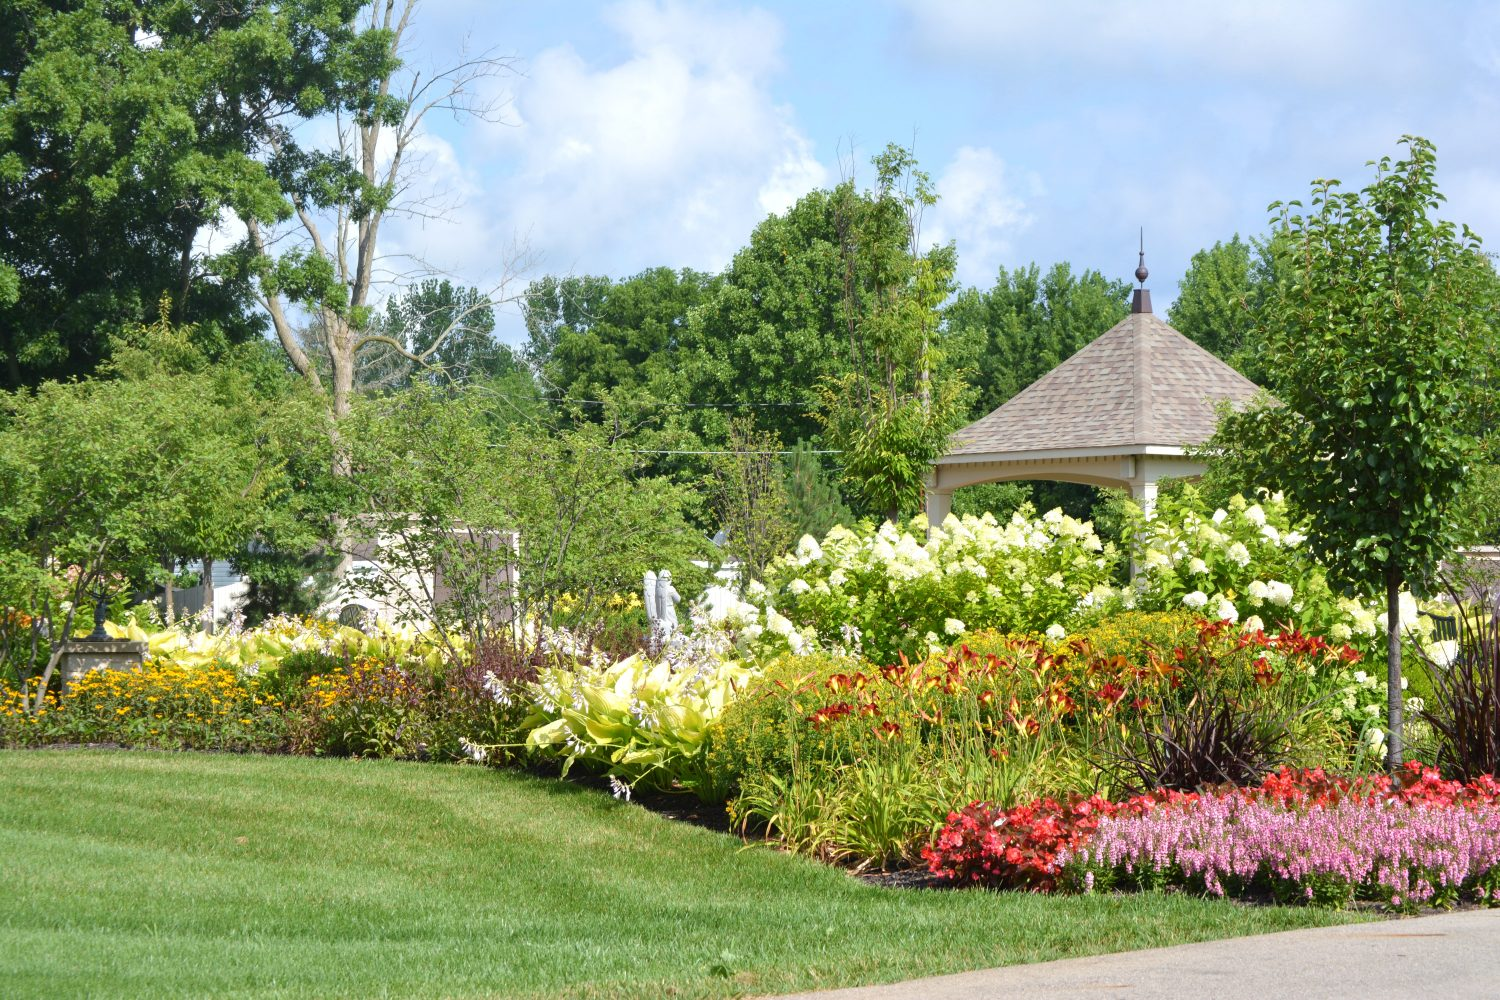 Full Flower bed, with pergola sitting in background